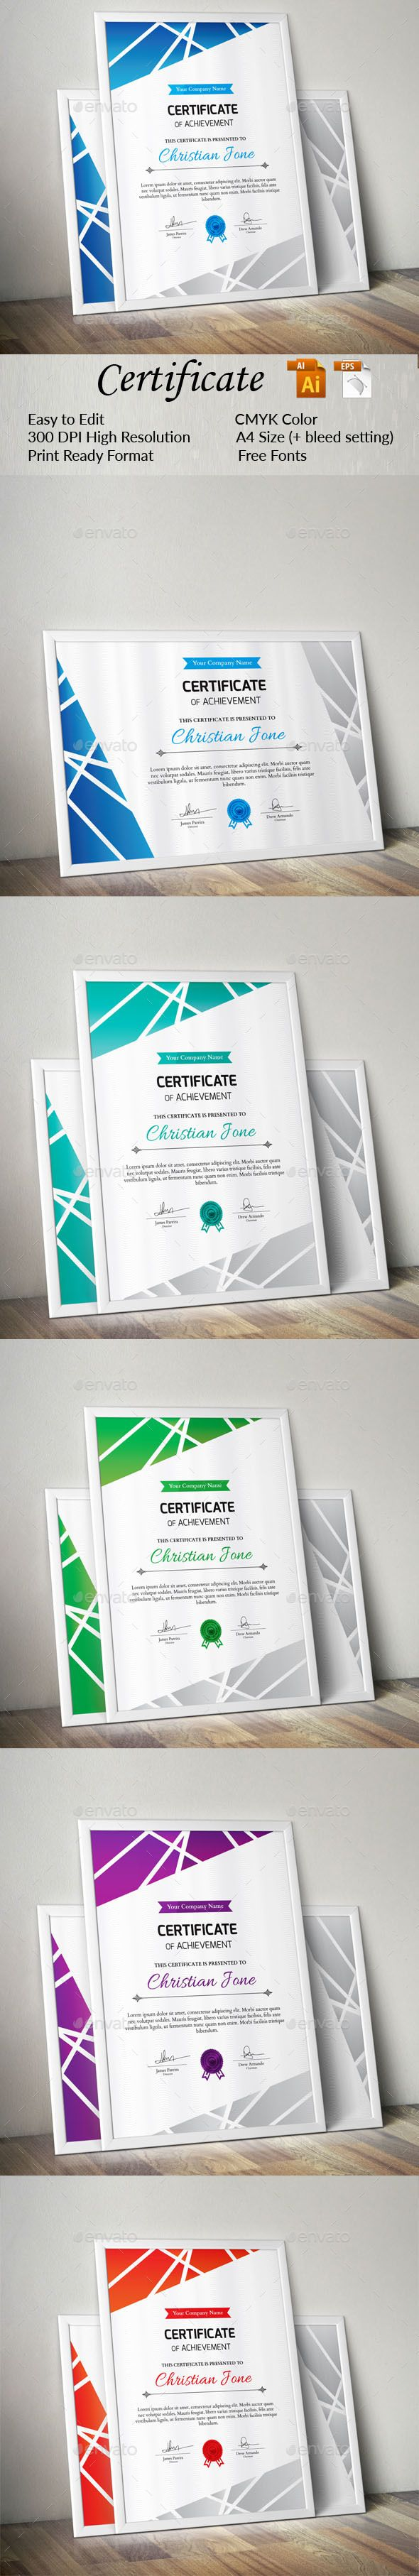 213 best CERTIFICATE images on Pinterest | Award certificates ...